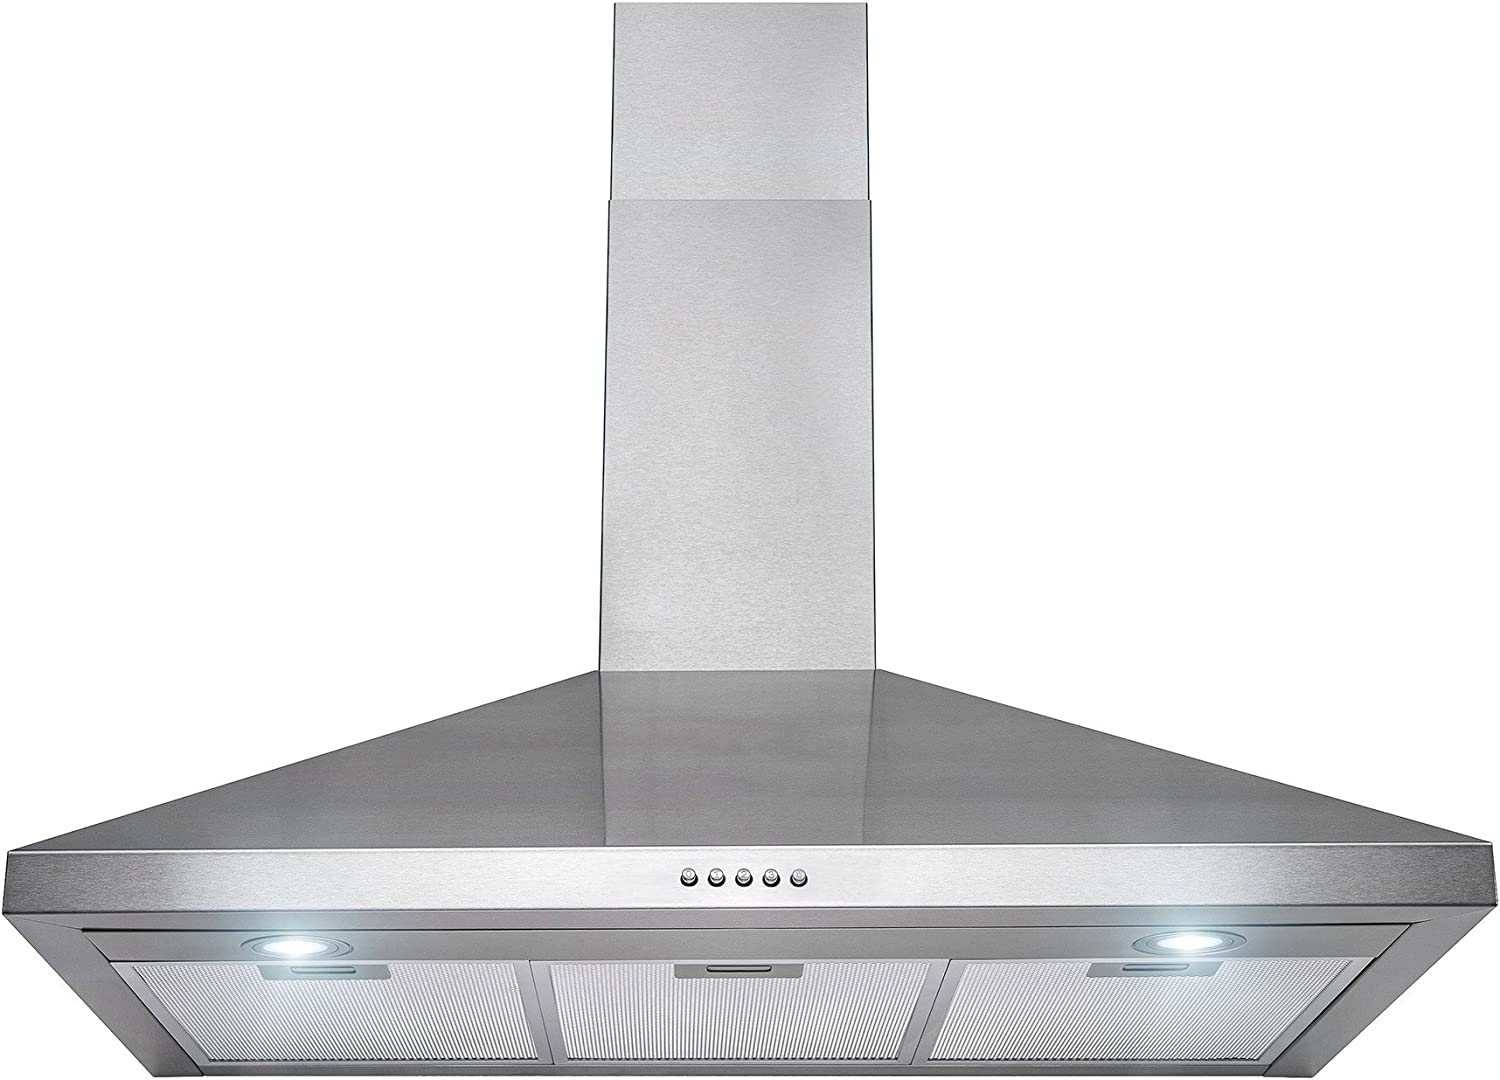 "36"" Convertible Wall Mount Range Hood with LED Lights in Stainless Steel with Push Buttons"